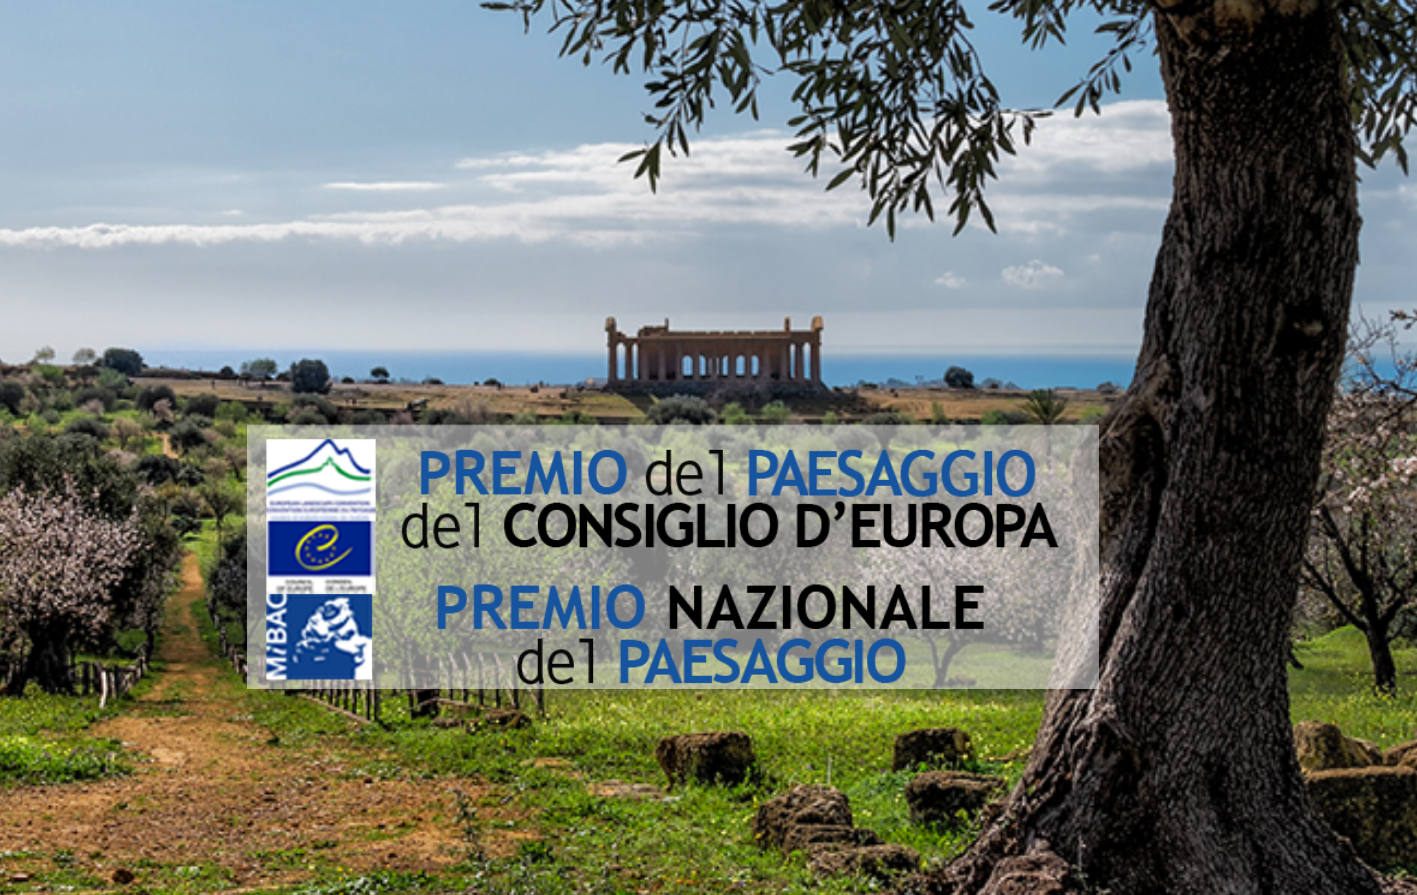 VI Edizione del Premio del Paesaggio del Consiglio d'Europa 2018